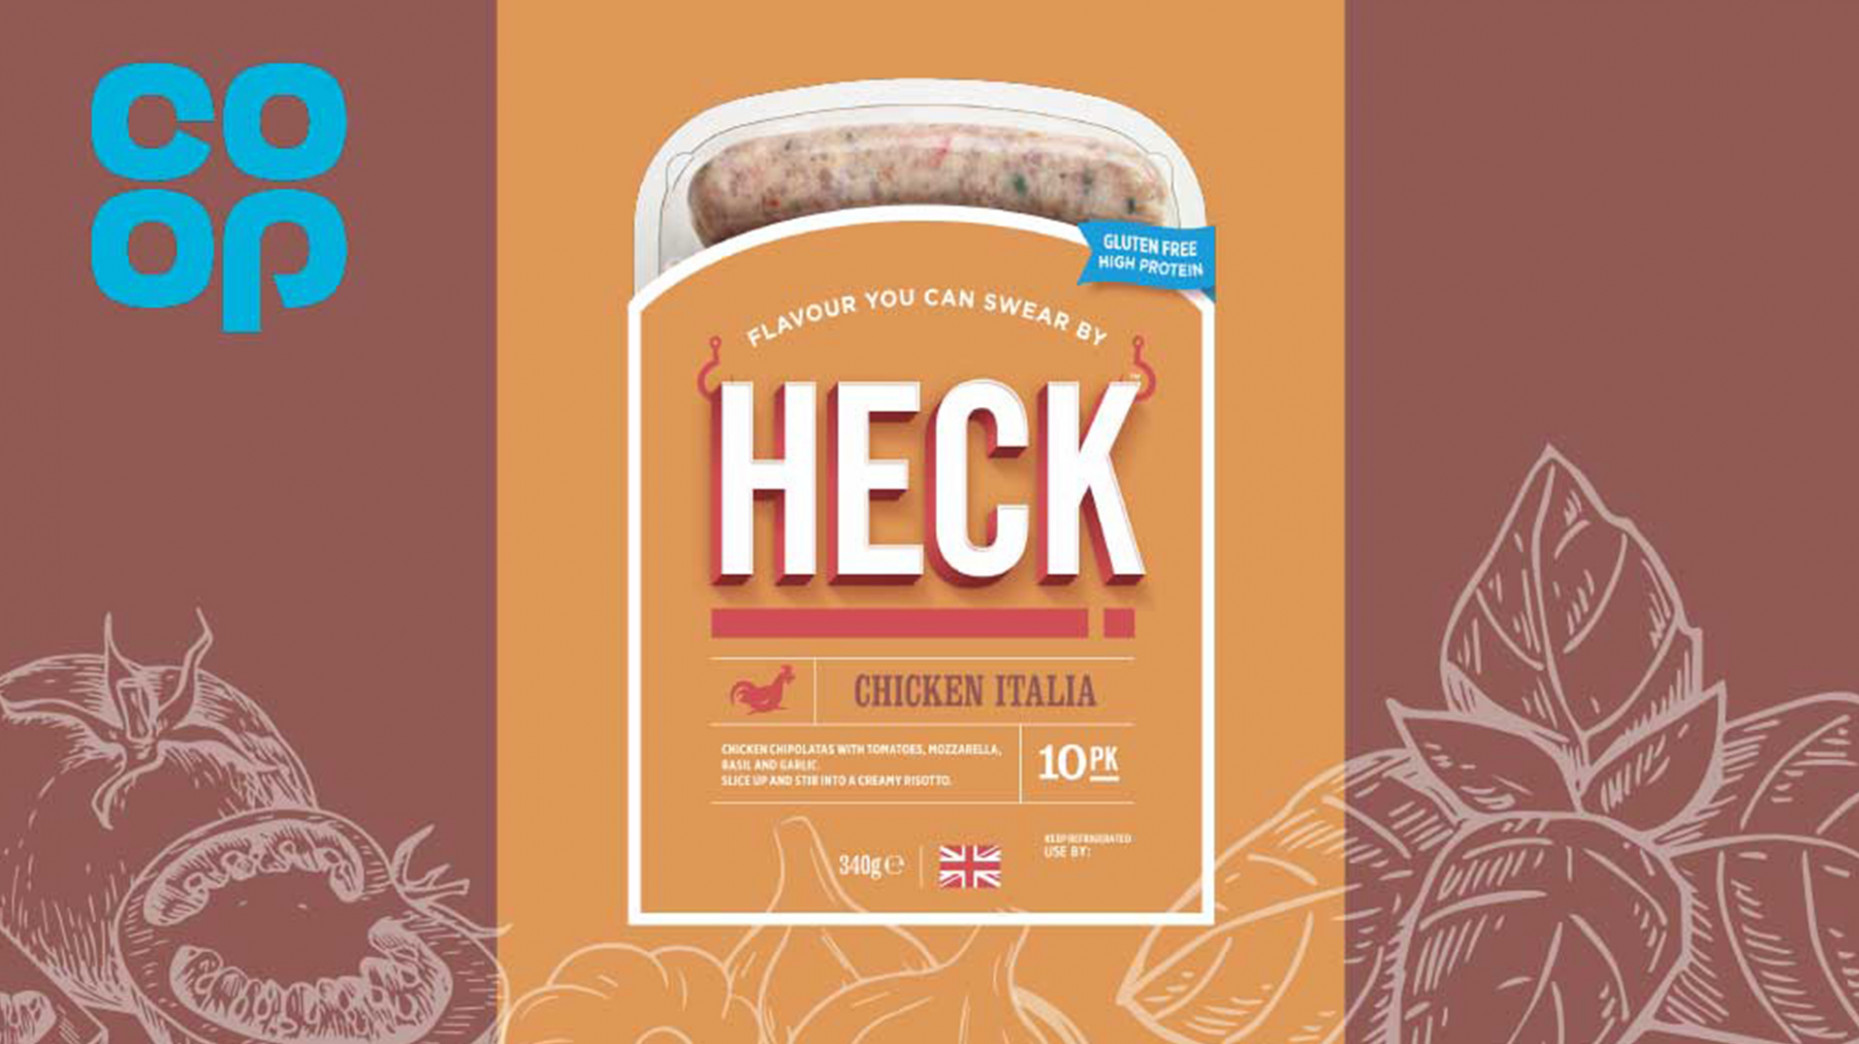 More Chicken Italia Chipolatas in Even More Co-Op Stores! - recipes heck chicken sausages